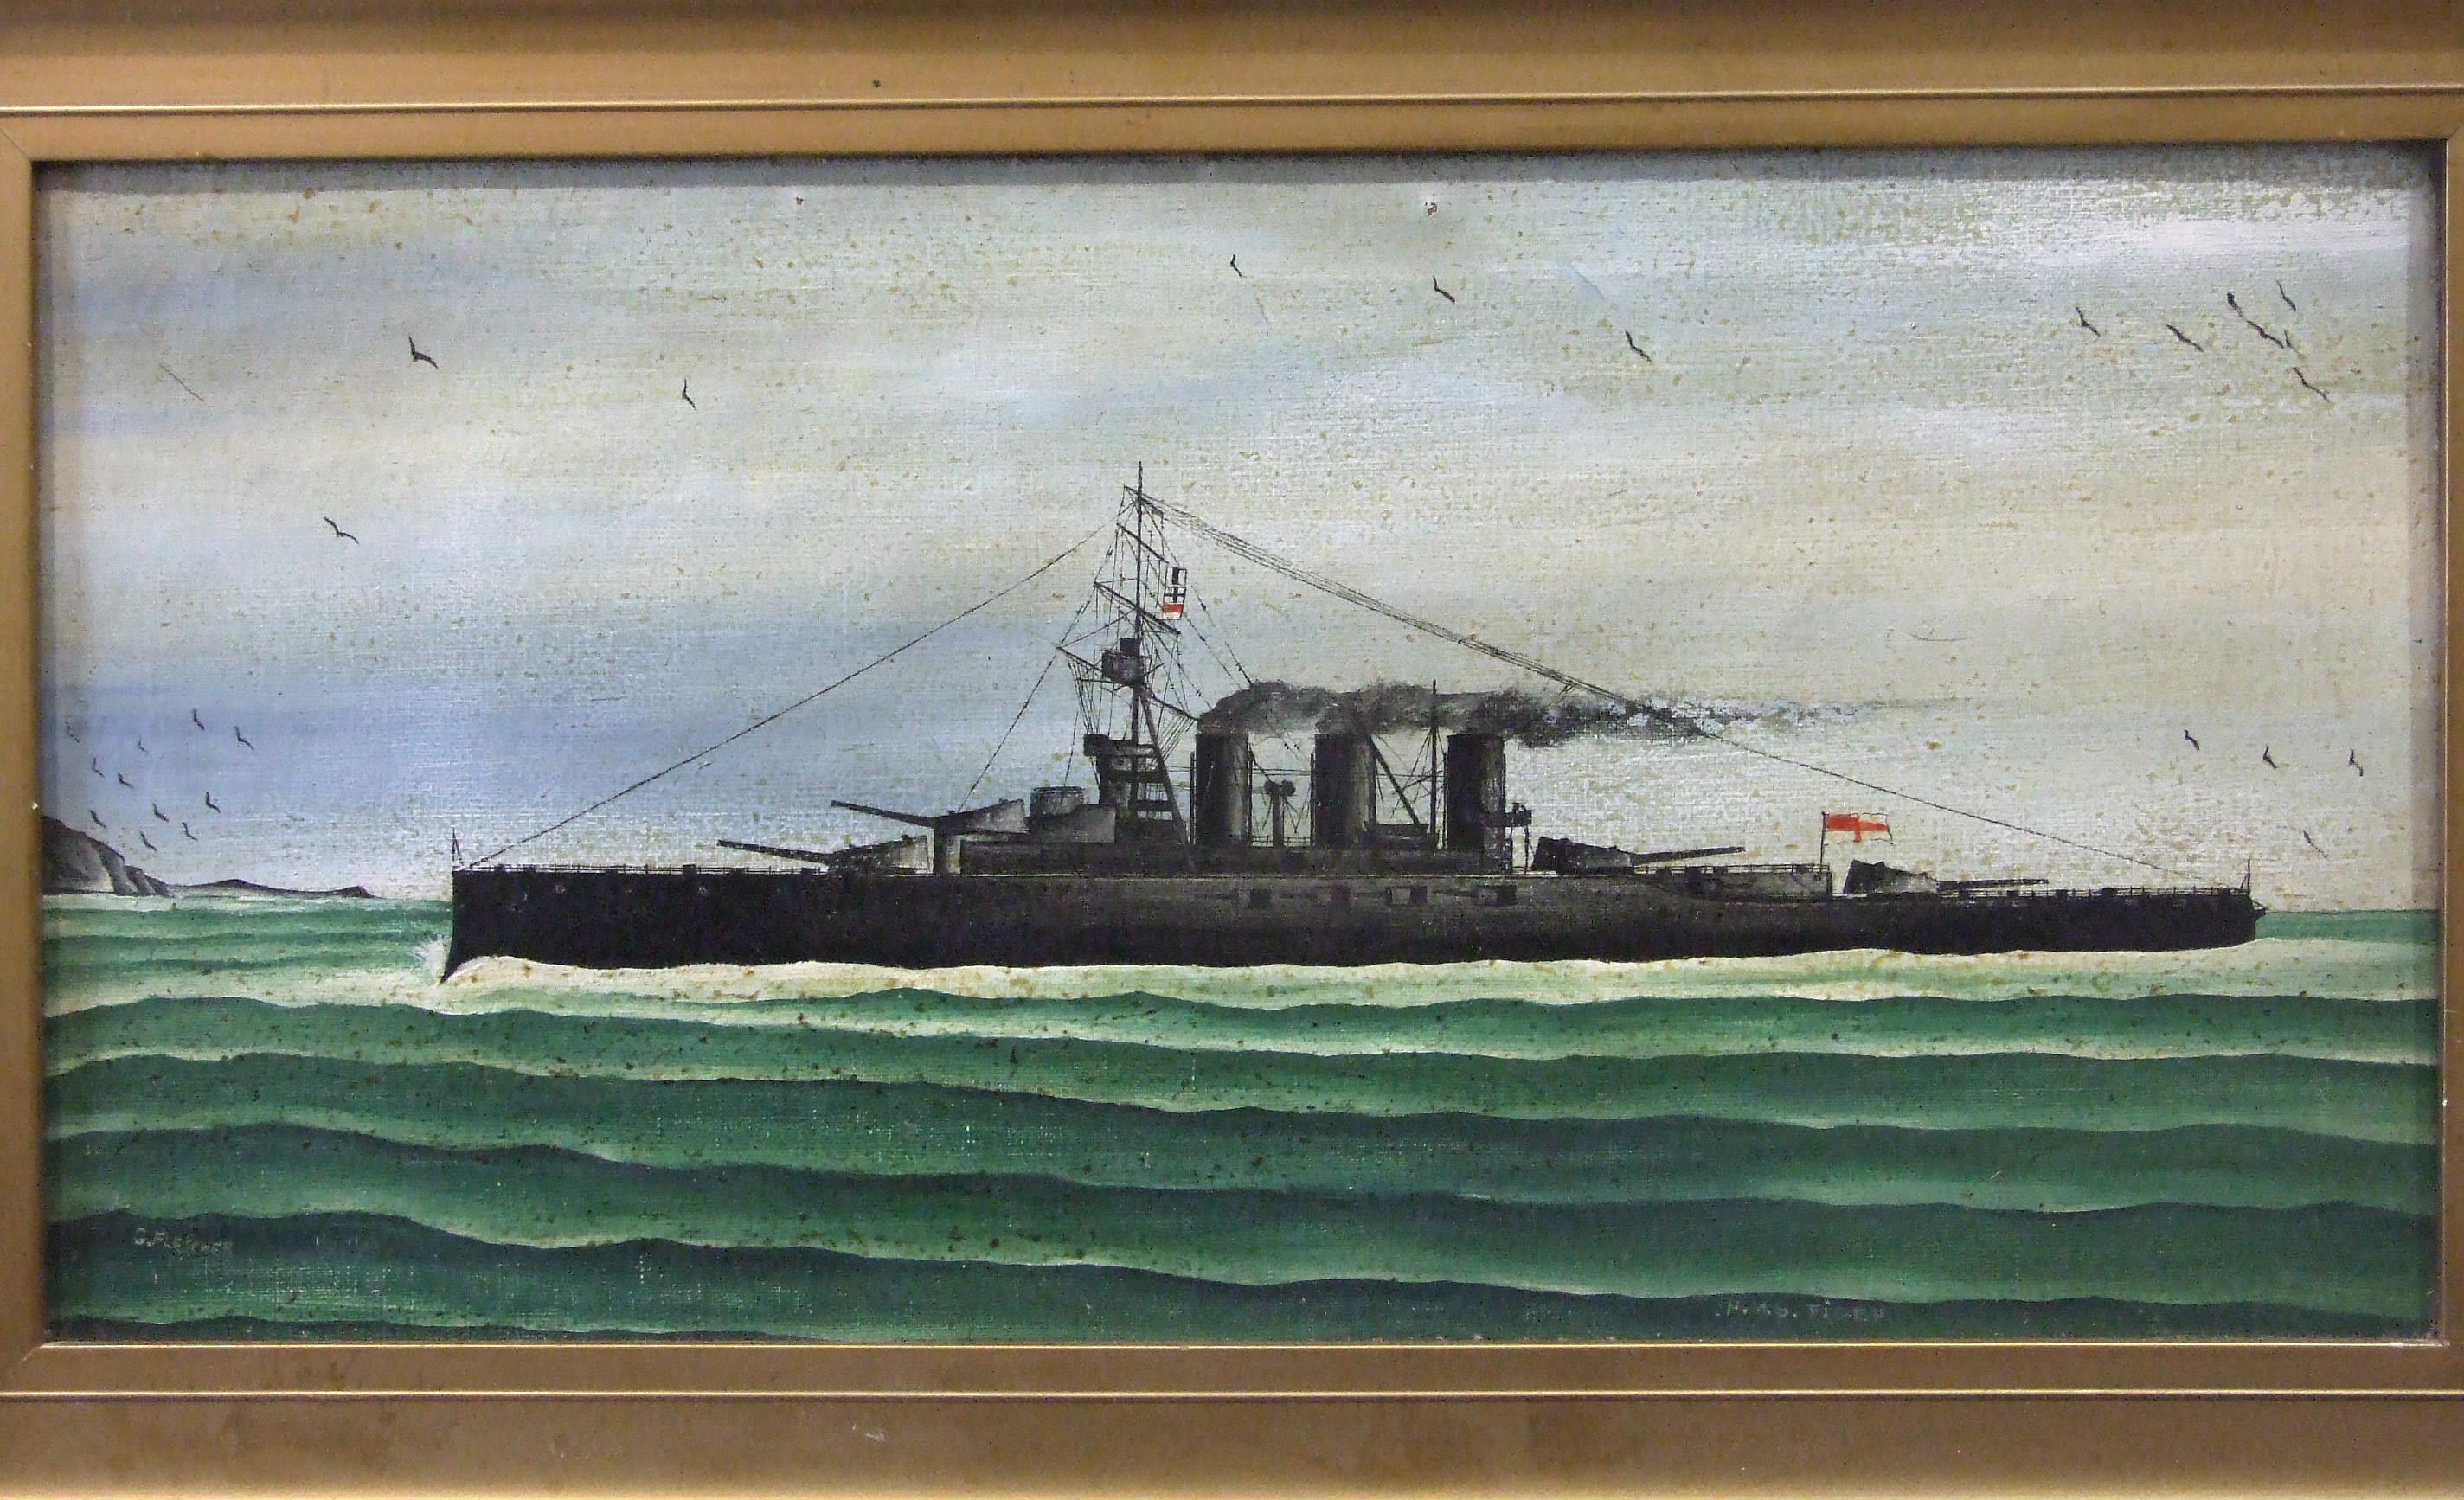 Lot 18 - •G Fletcher (20th century Naïve School) HMS LION Oil on canvas, signed and titled, 29.5 x 60cm and a